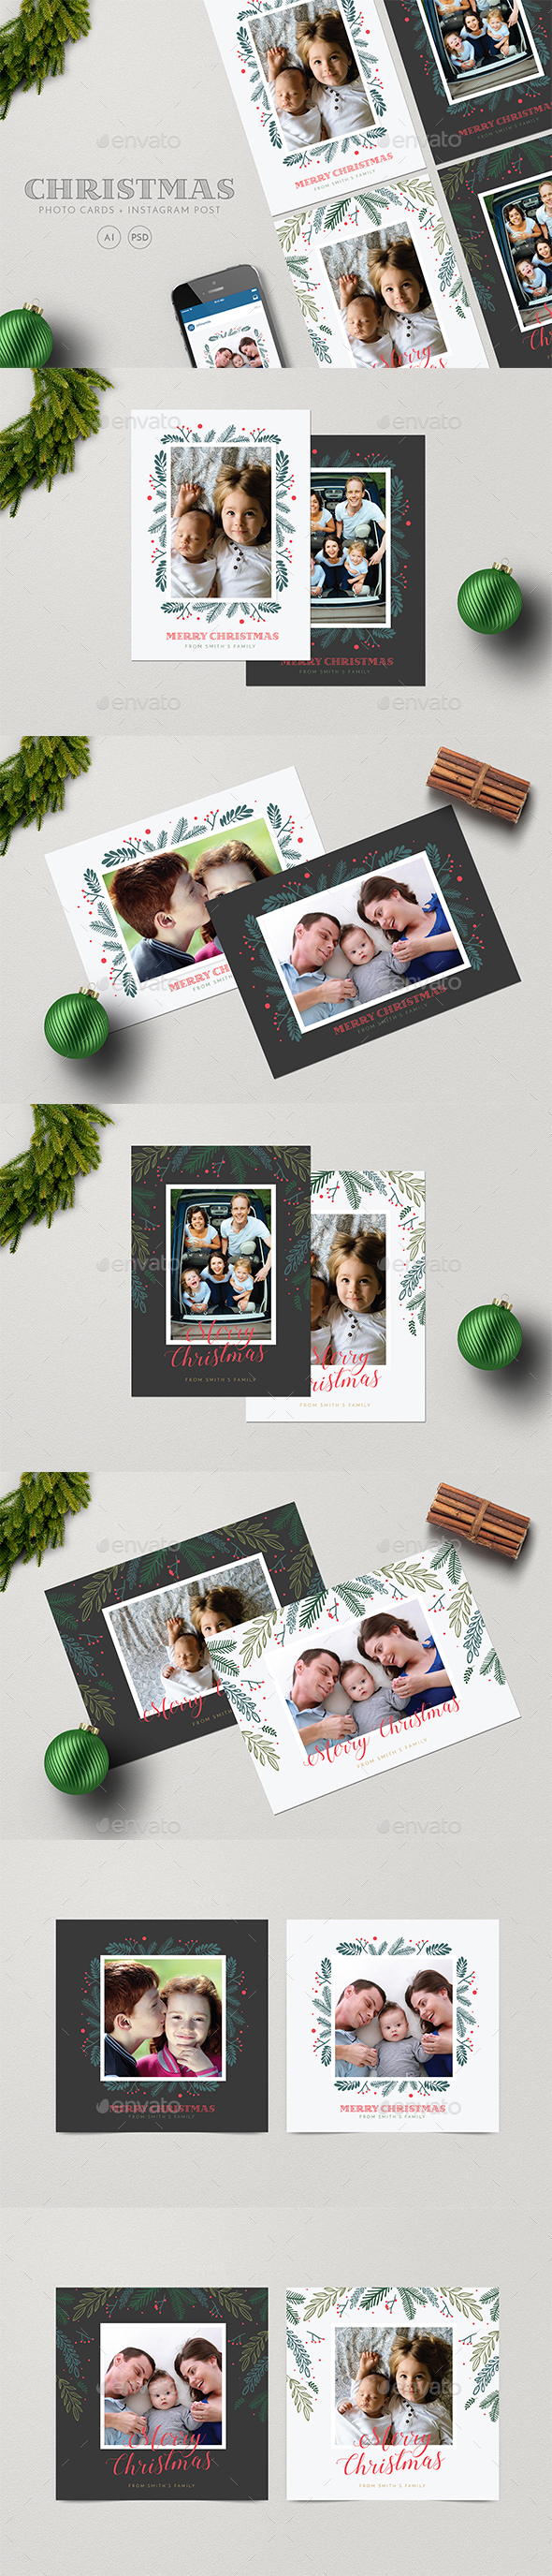 Christmas Photocard Set + Instagram Post - Holiday Greeting Cards